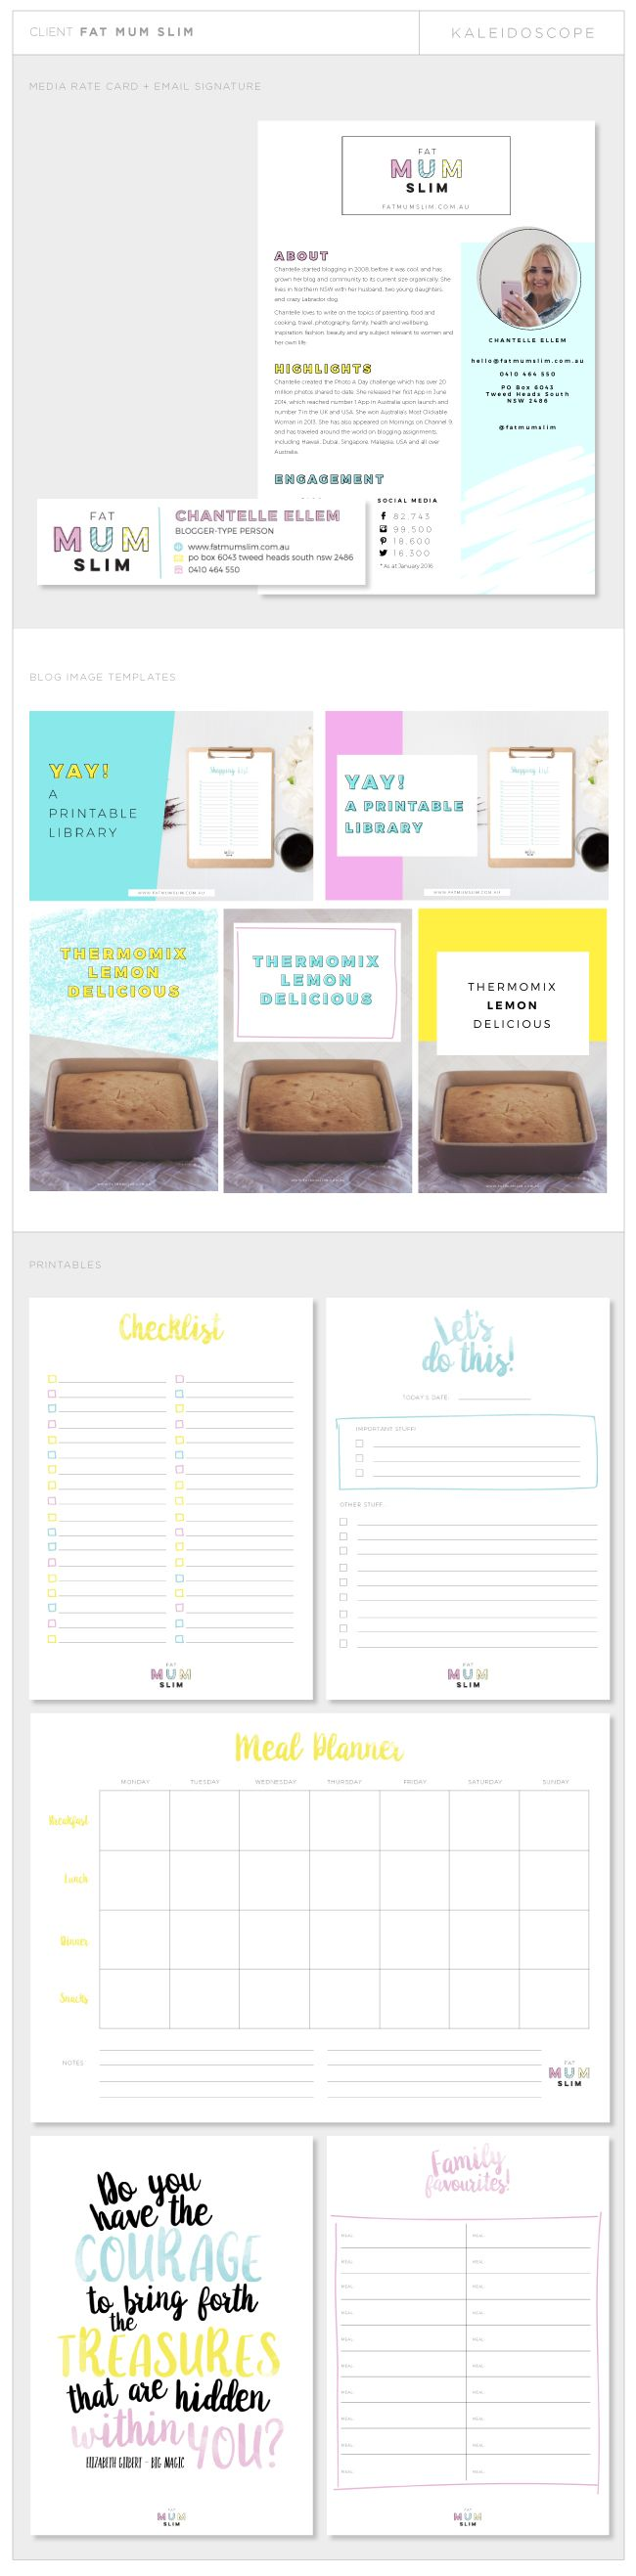 Fat Mum Slim Blog Graphic Design elements by Amanda Fuller of Kaleidoscope Design Studio